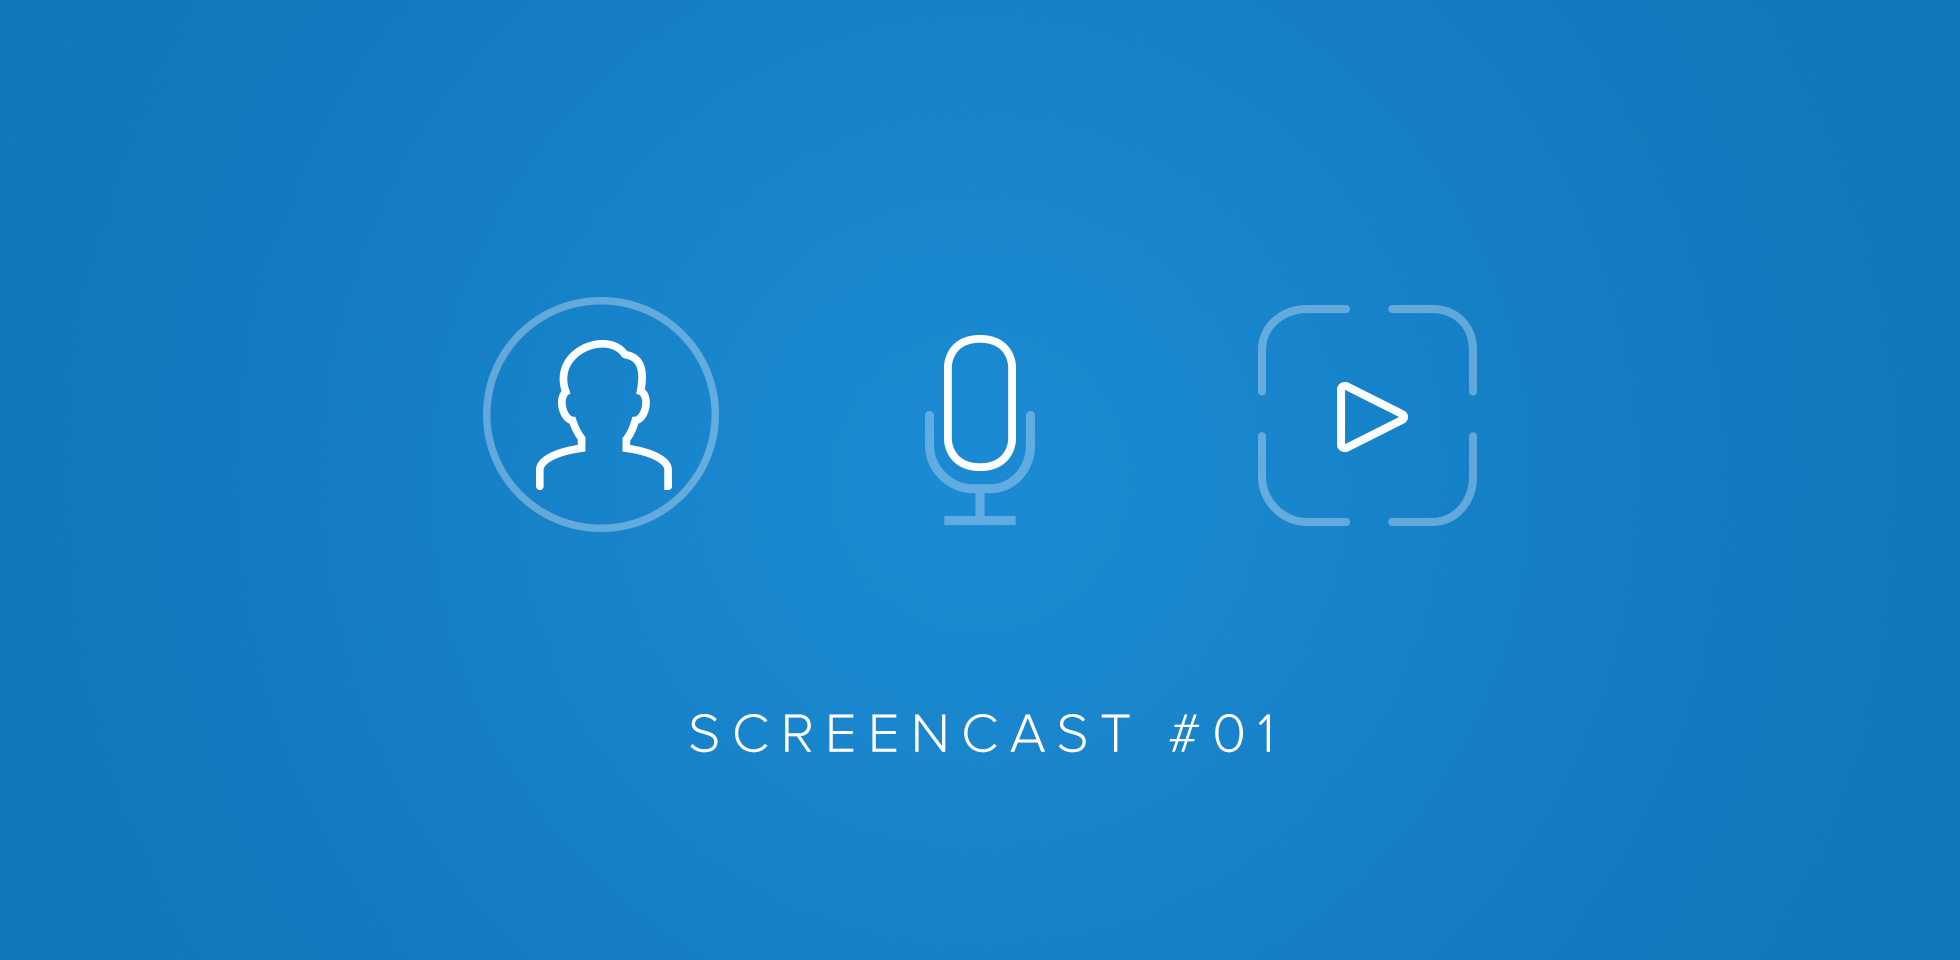 Screencast #01 - The Pagekit file structure